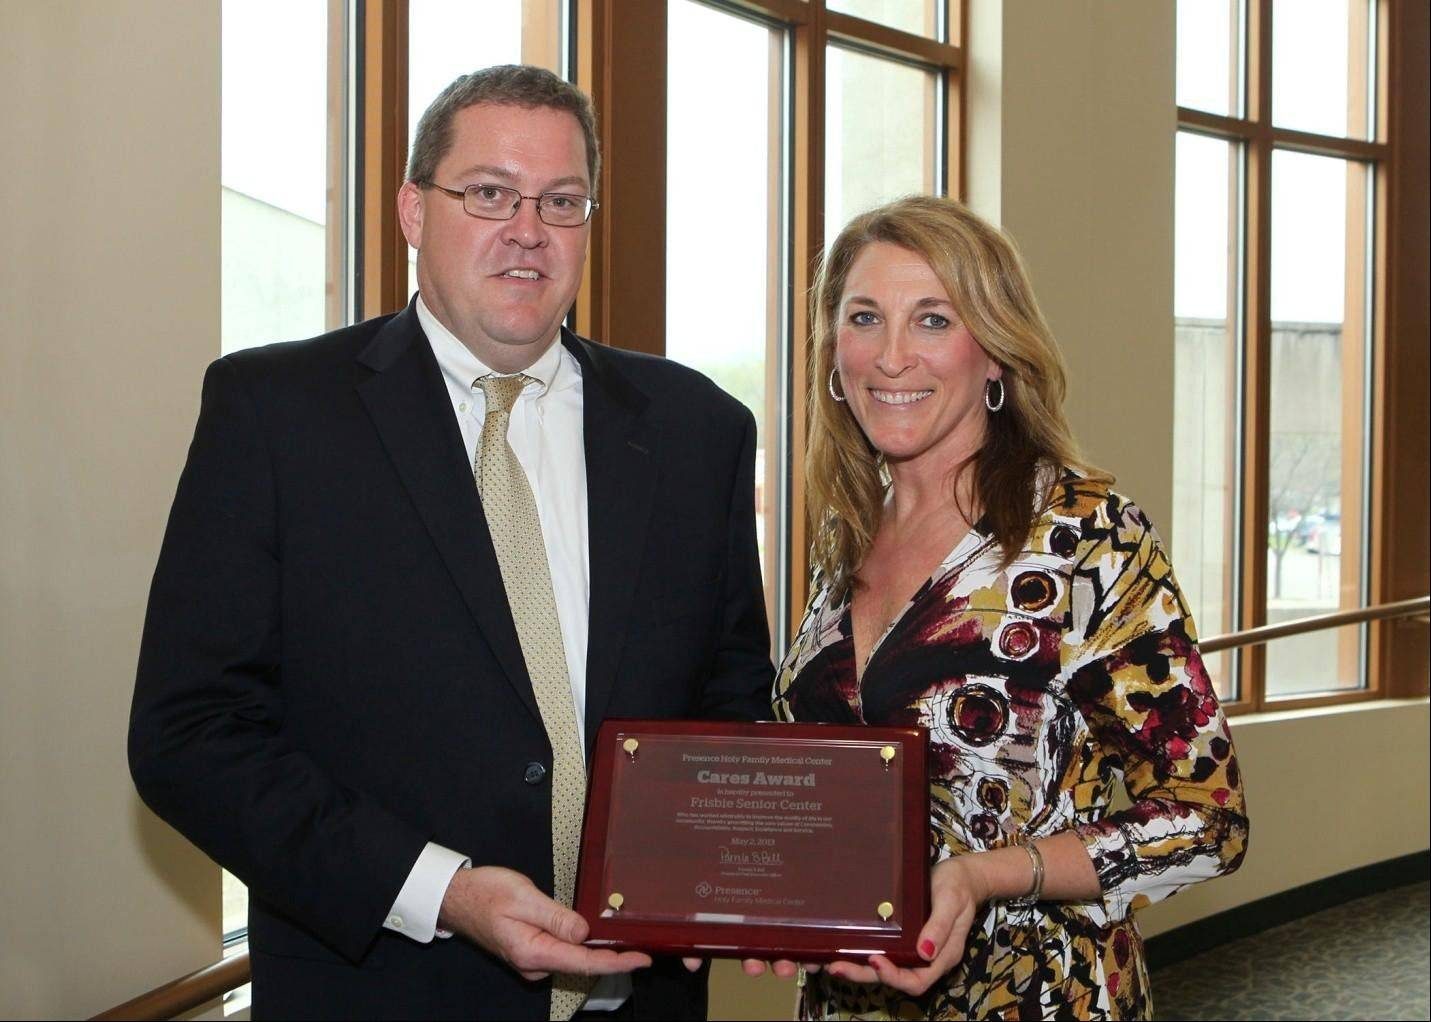 Steve Samuelson, left, president and chief executive officer, Frisbie Senior Center, accepts the fourth annual Cares Award from Pam Bell, Presence Holy Family Medical Center chief executive officer.